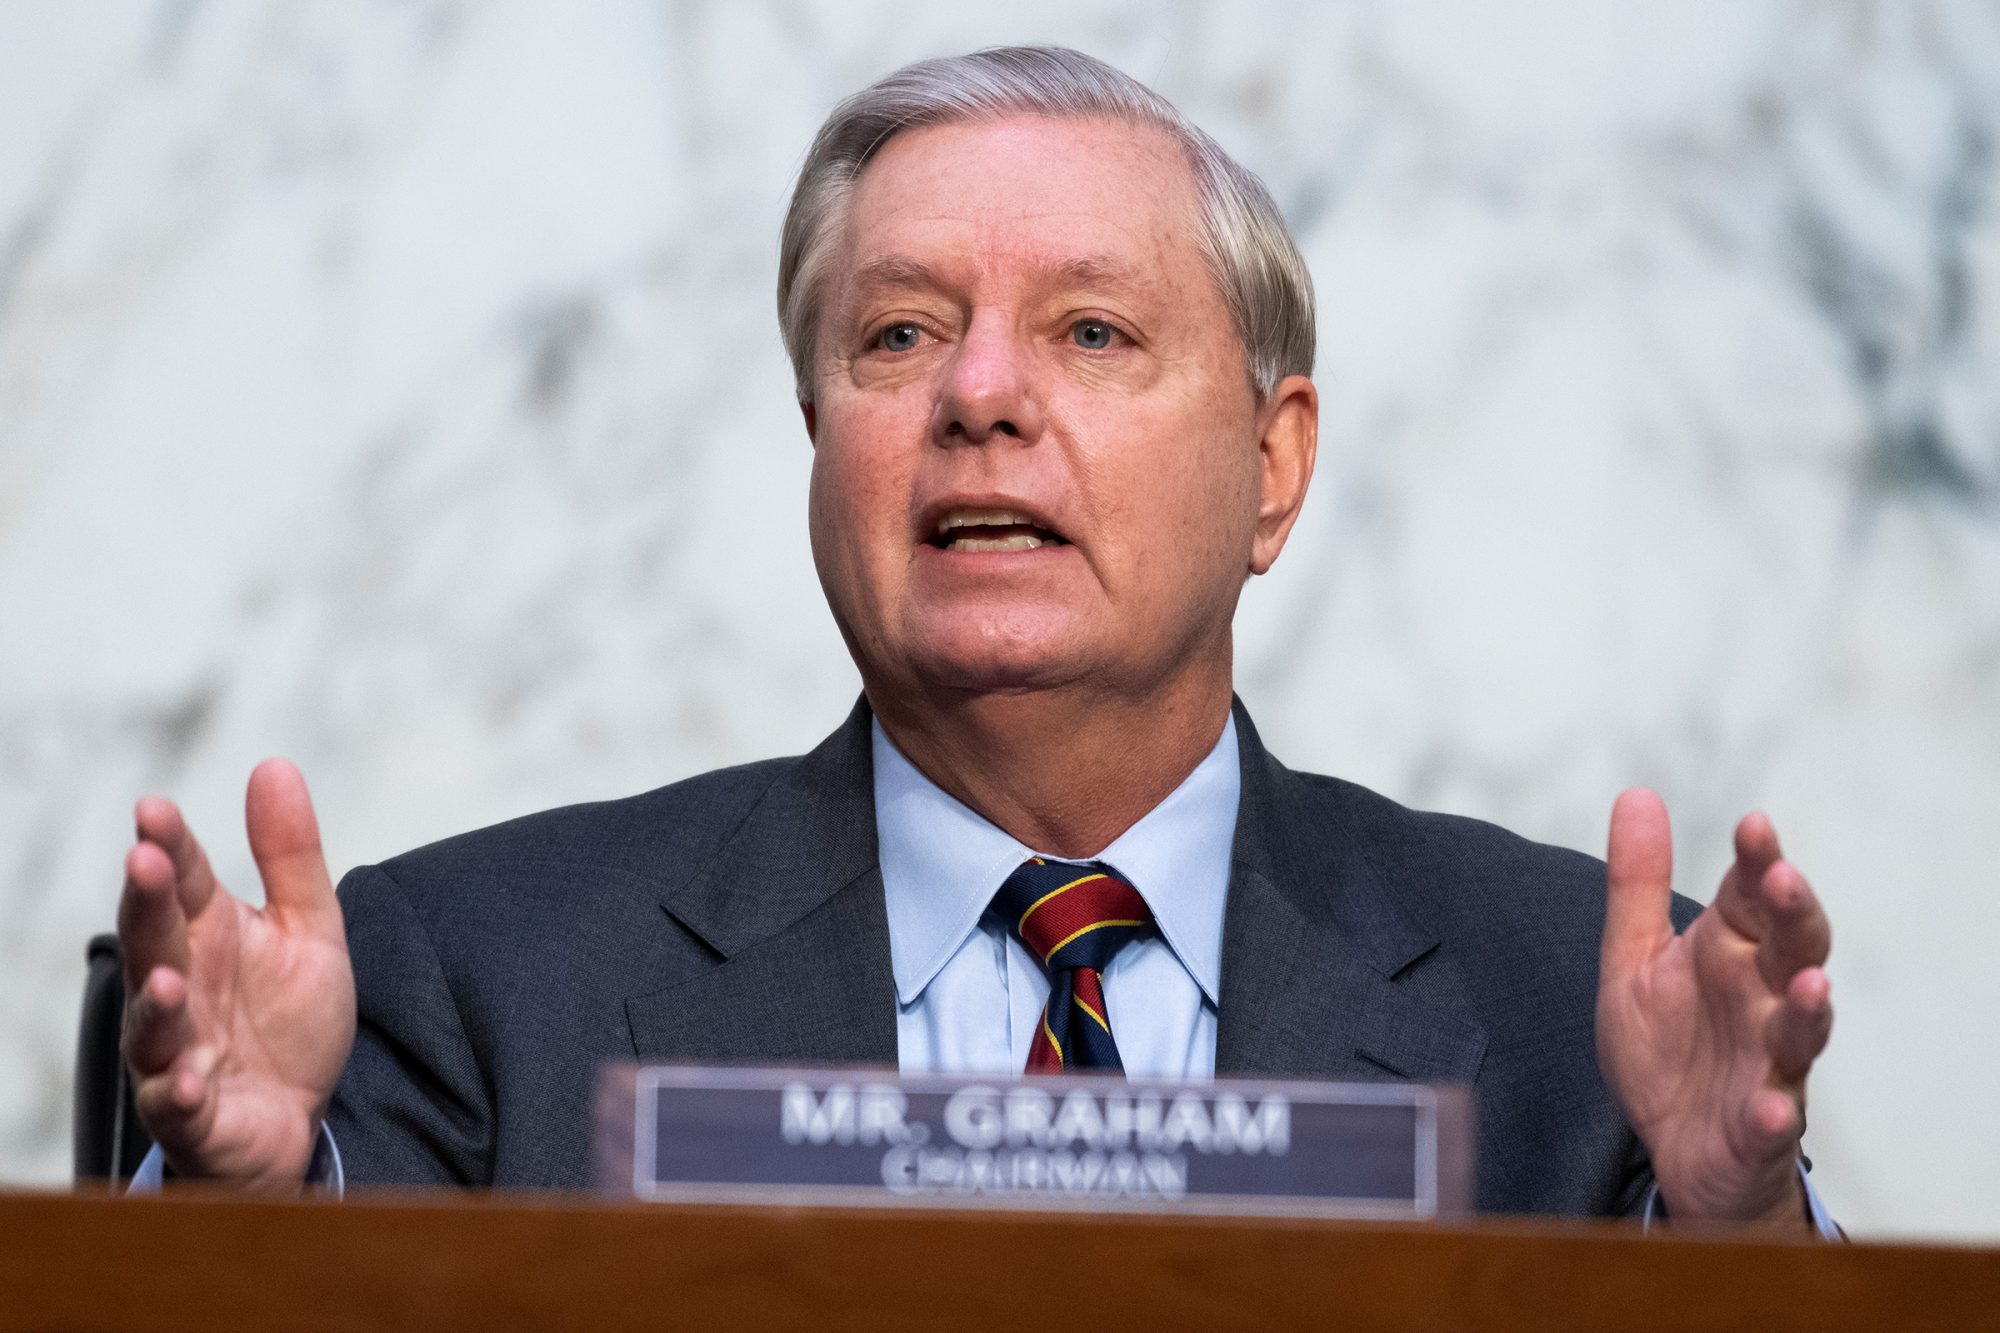 Chairman Sen. Lindsey Graham, R-S.C., questions Supreme Court justice nominee Amy Coney Barrett on the second day of her Senate Judiciary Committee confirmation hearing in Hart Senate Office Building on October 13, 2020 in Washington, DC